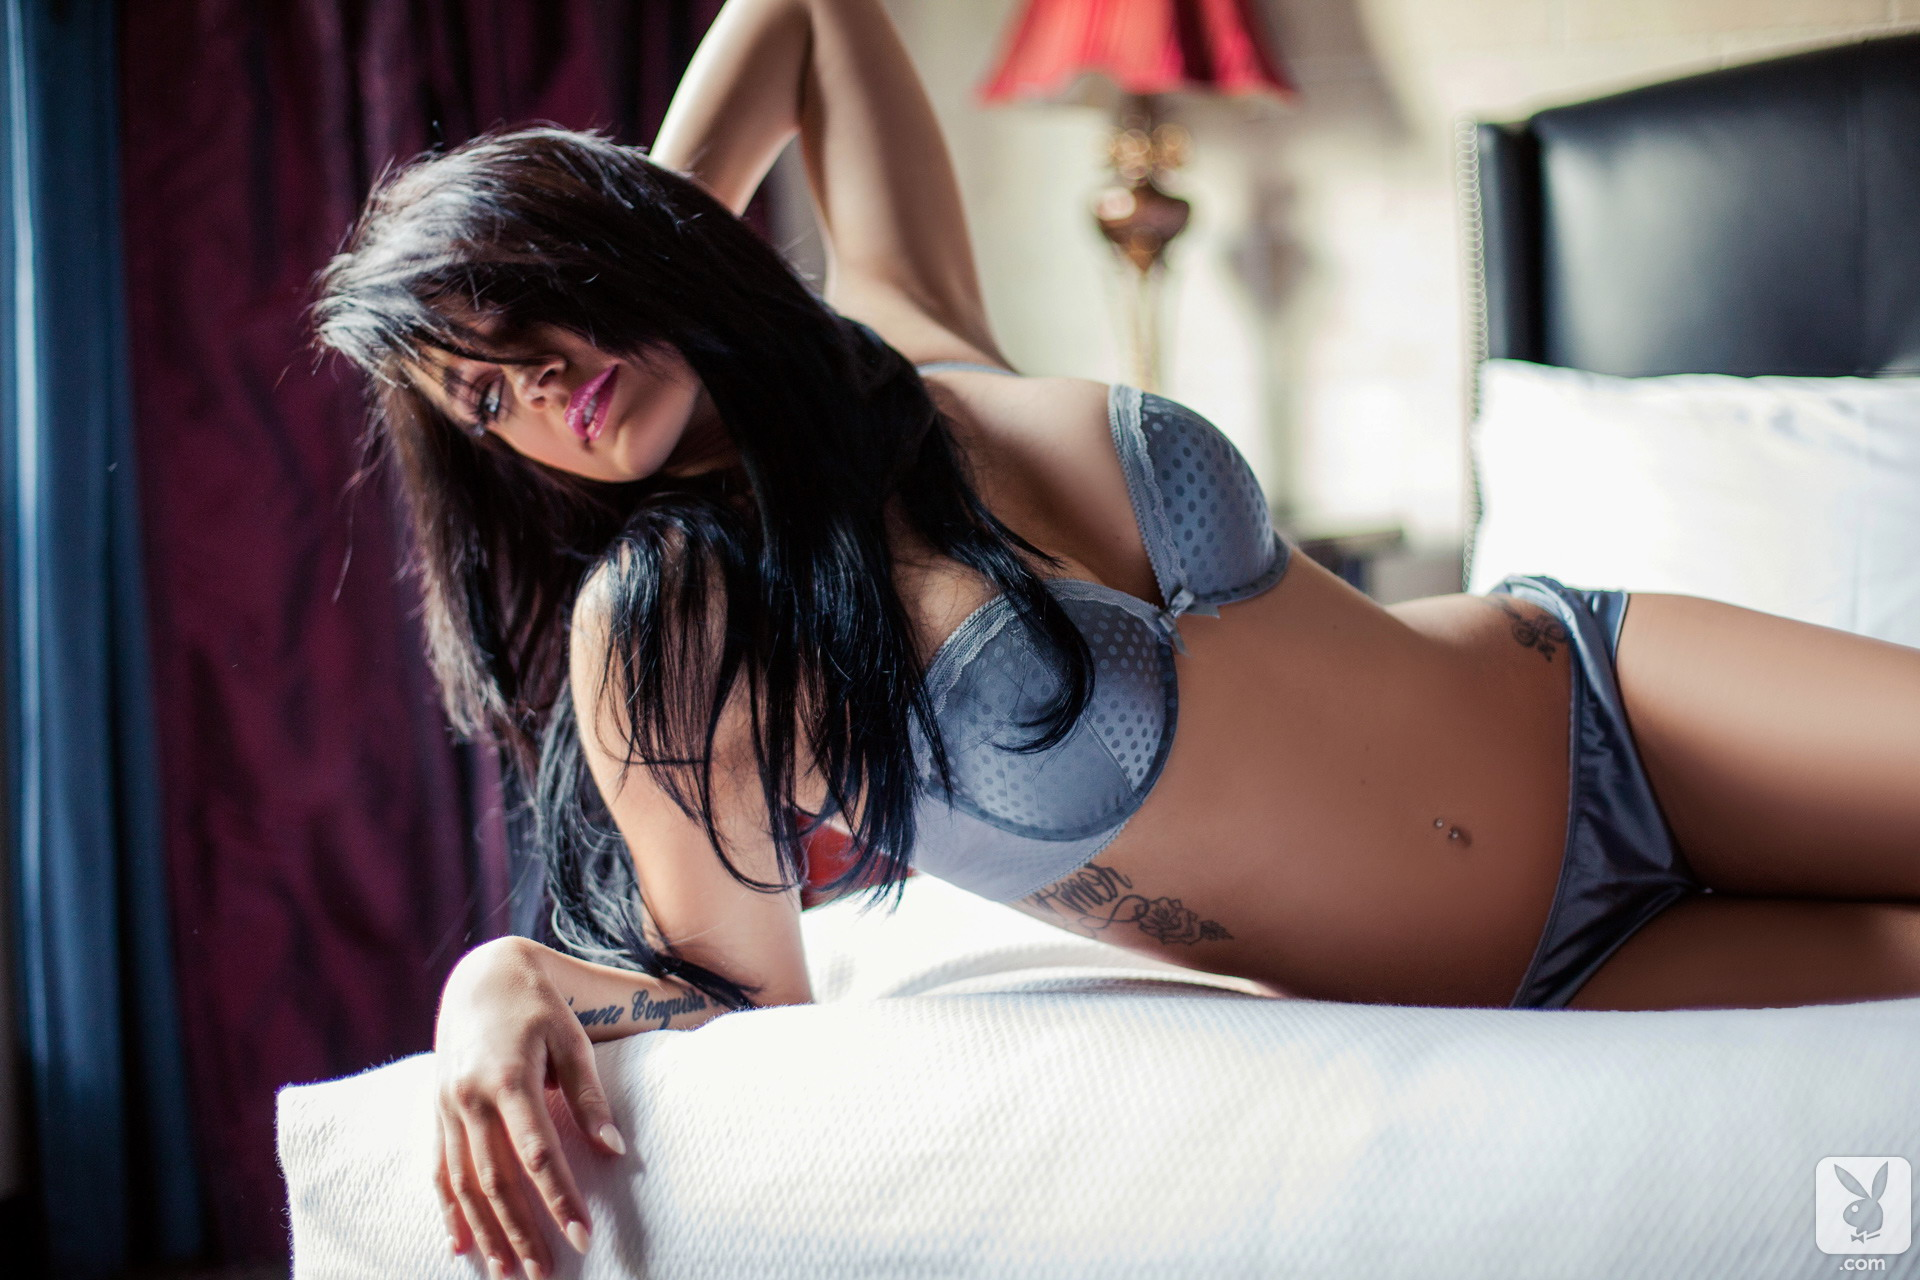 brittani-jayde-bedroom-playboy-02